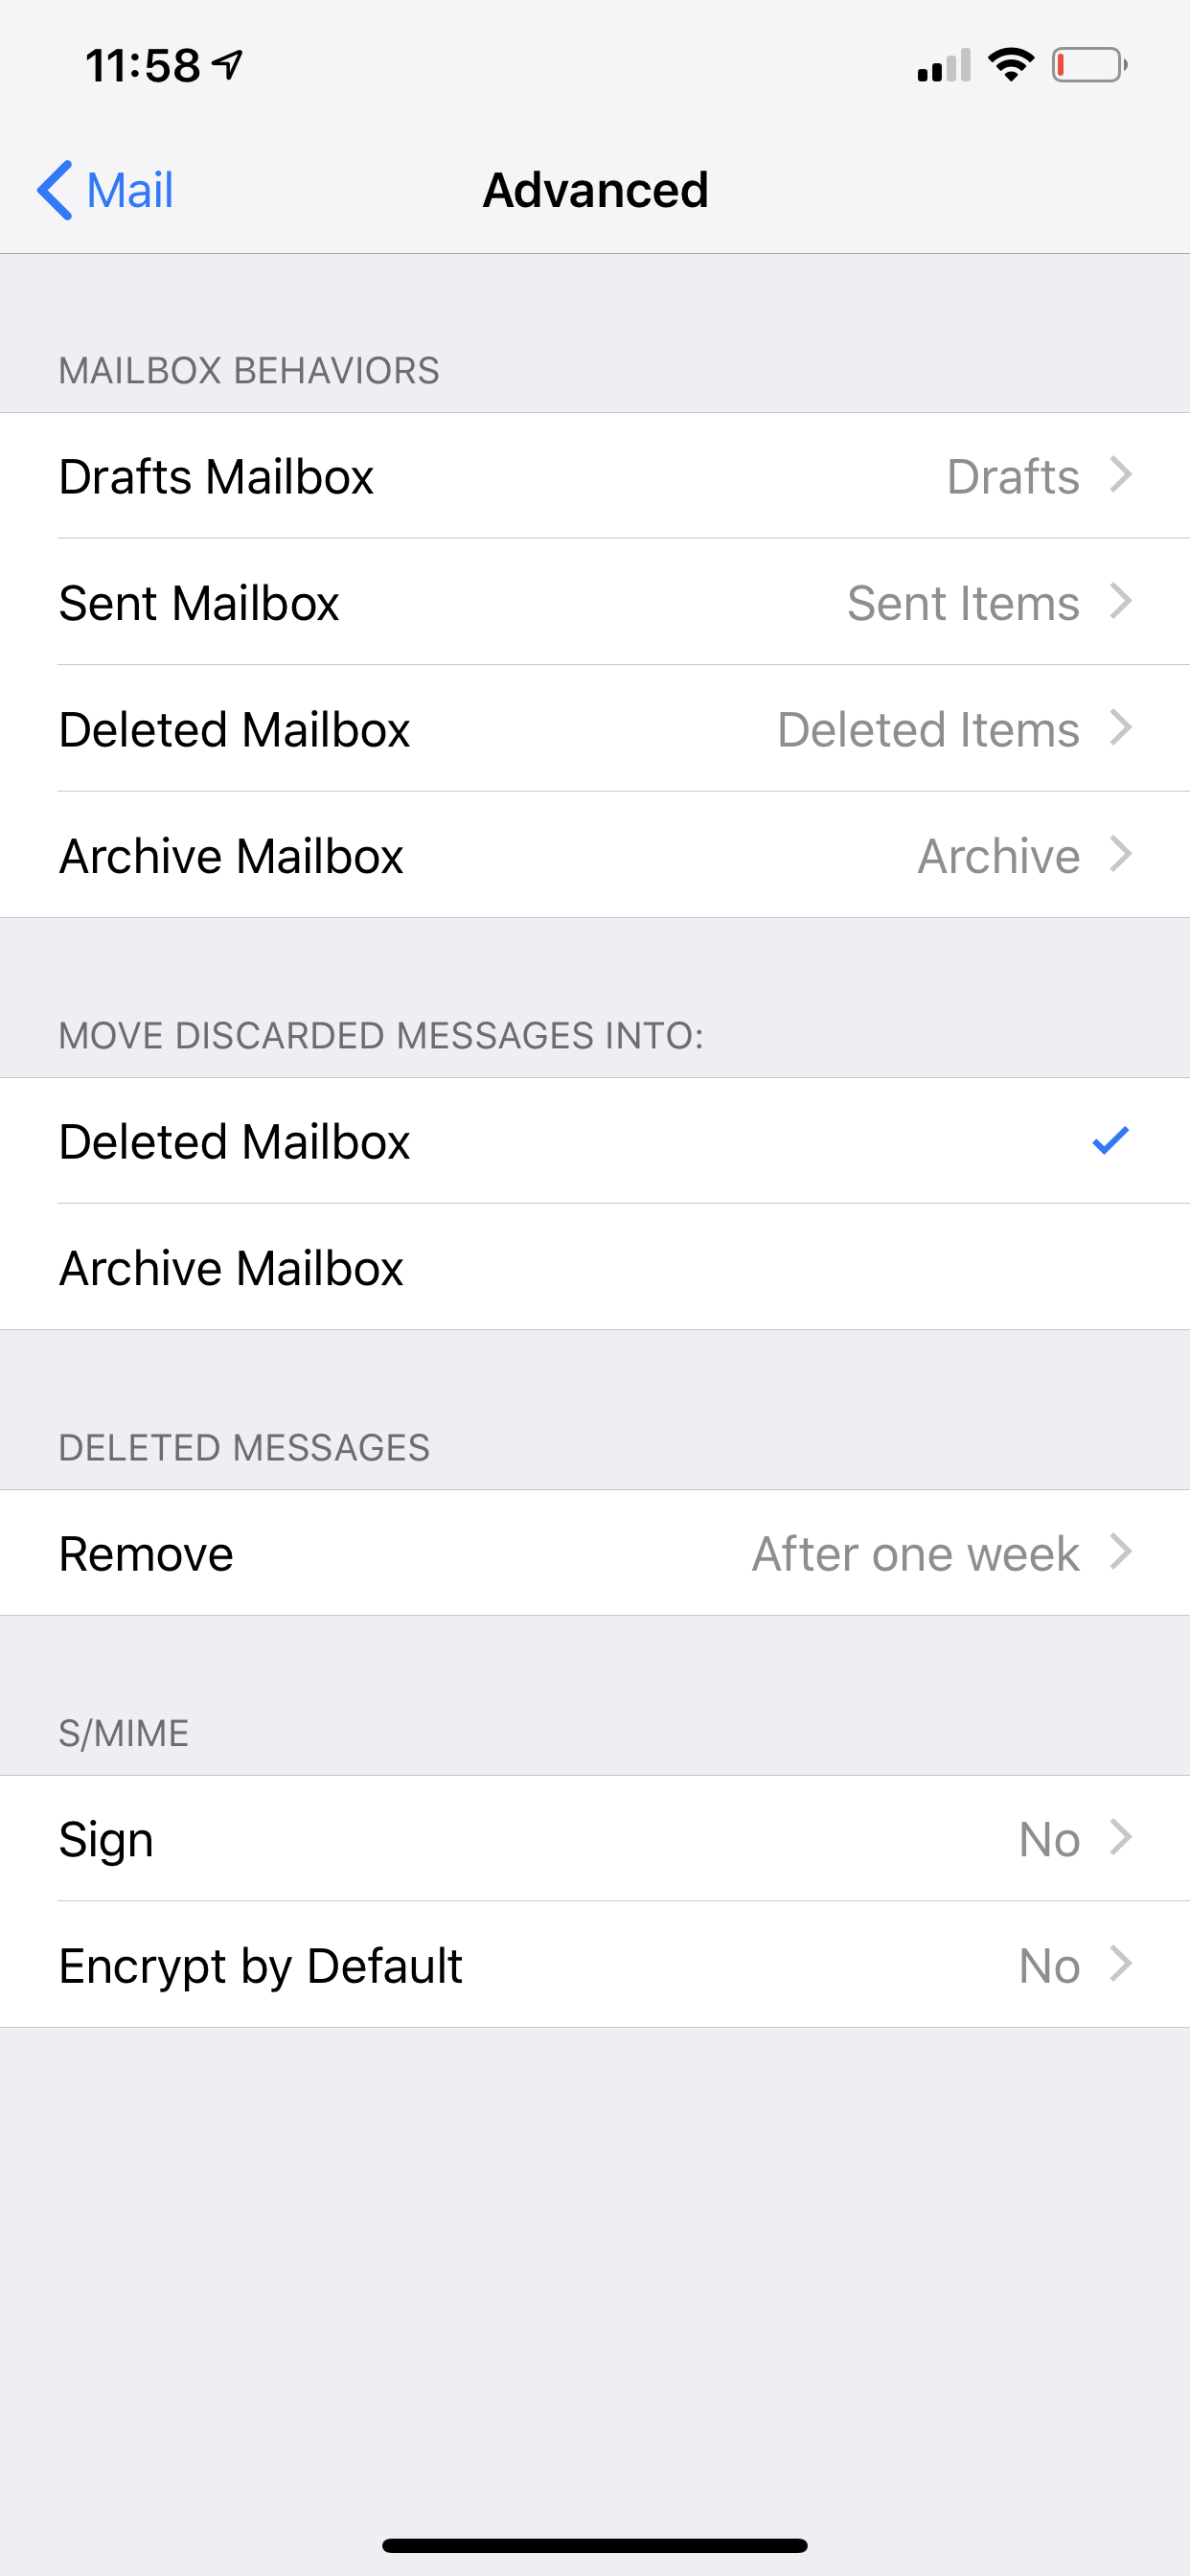 iCloud Mail & Windows 10 Mail App creates Duplicate Sent and